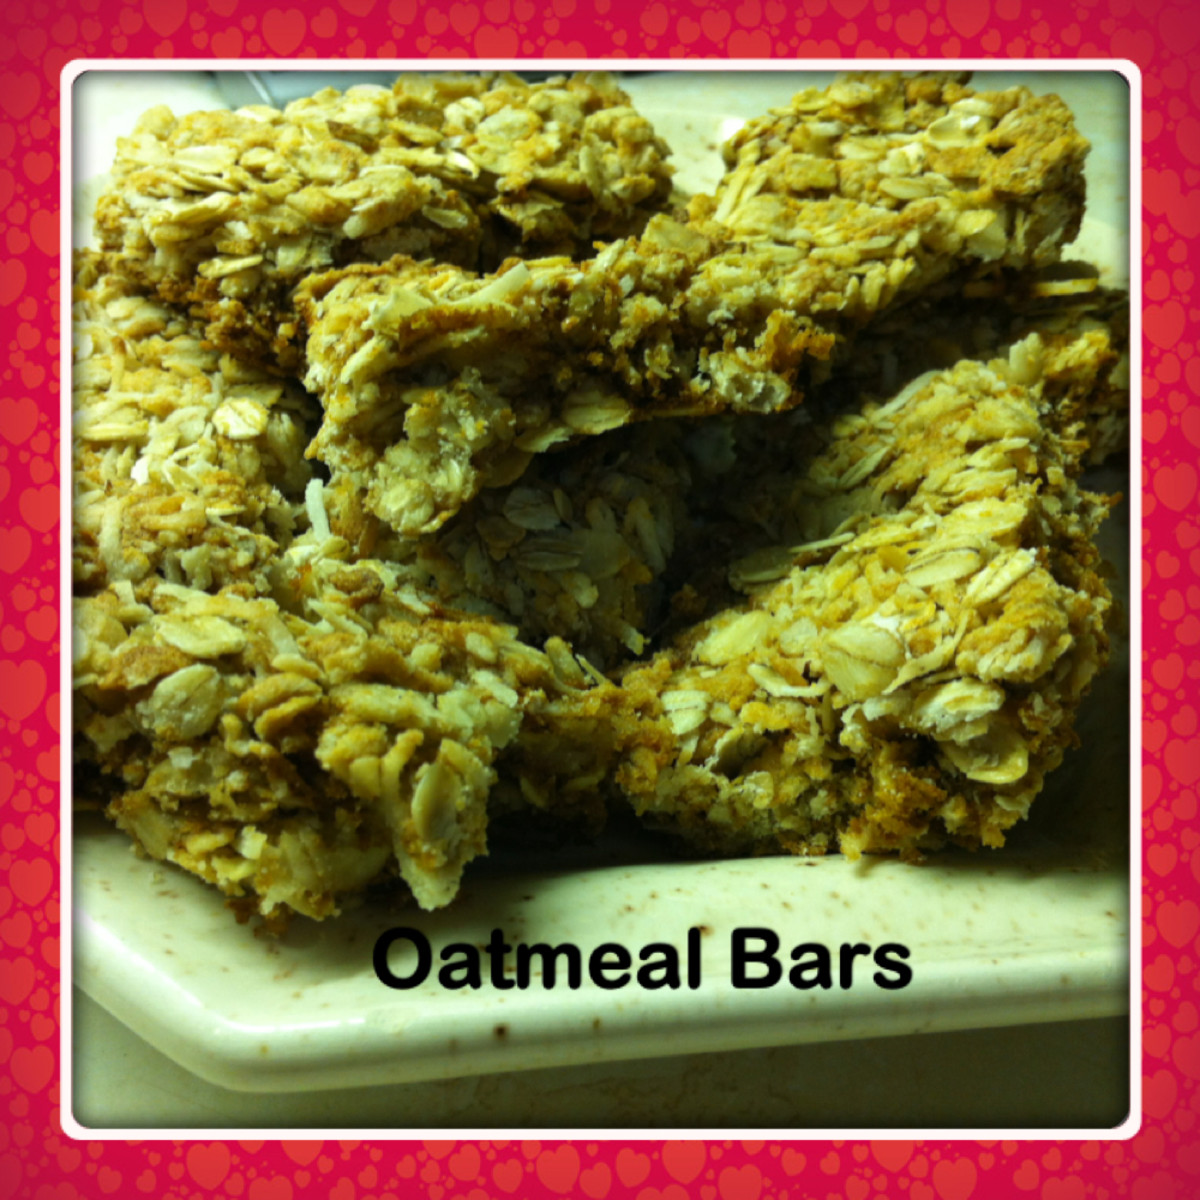 Oatmeal Bars; the perfect bar to along with your tea or coffee.